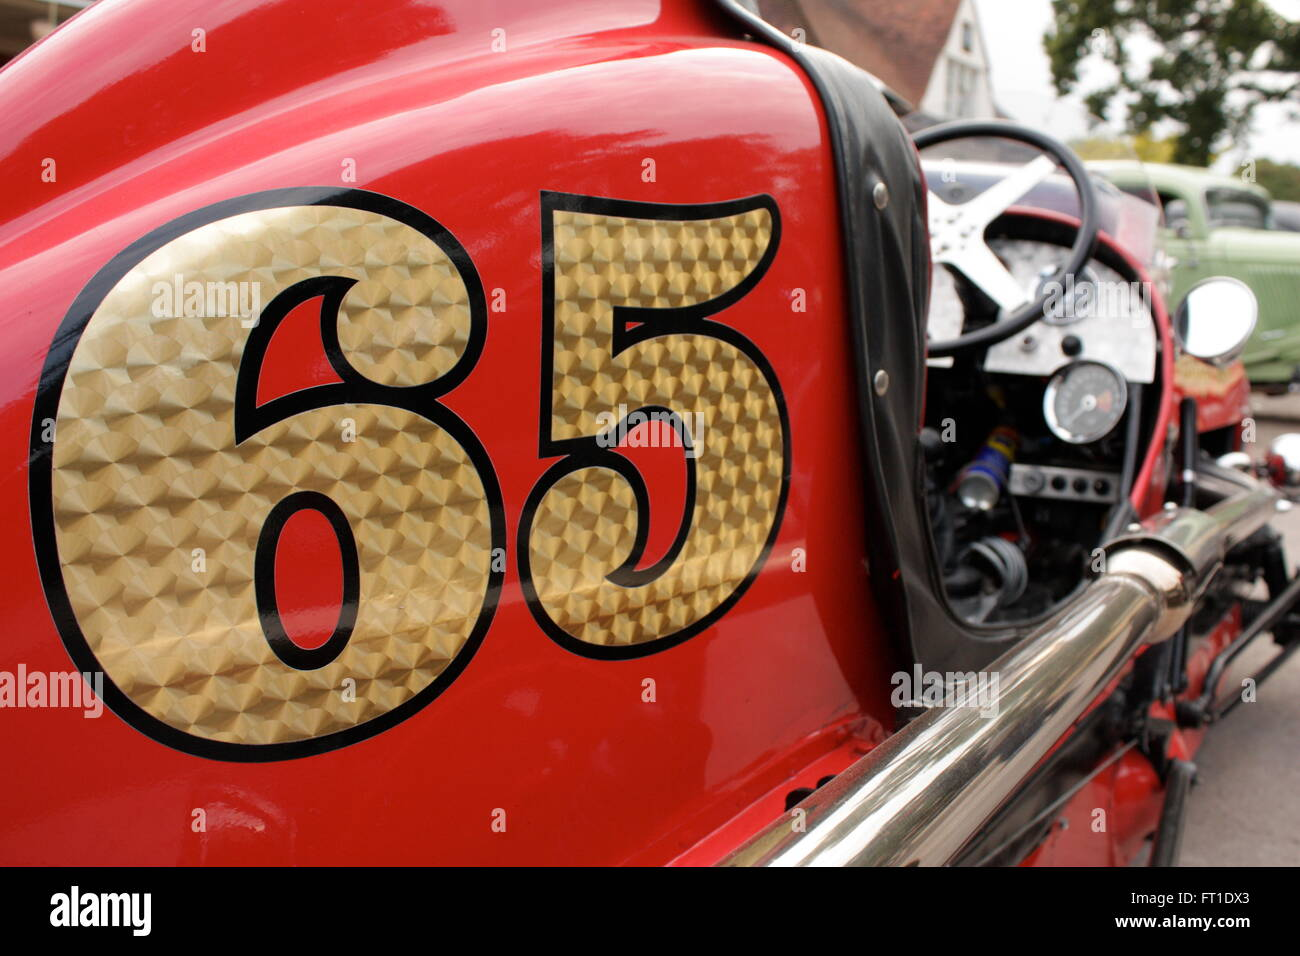 Number 65 on a Hotrod racing car Stock Photo: 100836459 - Alamy